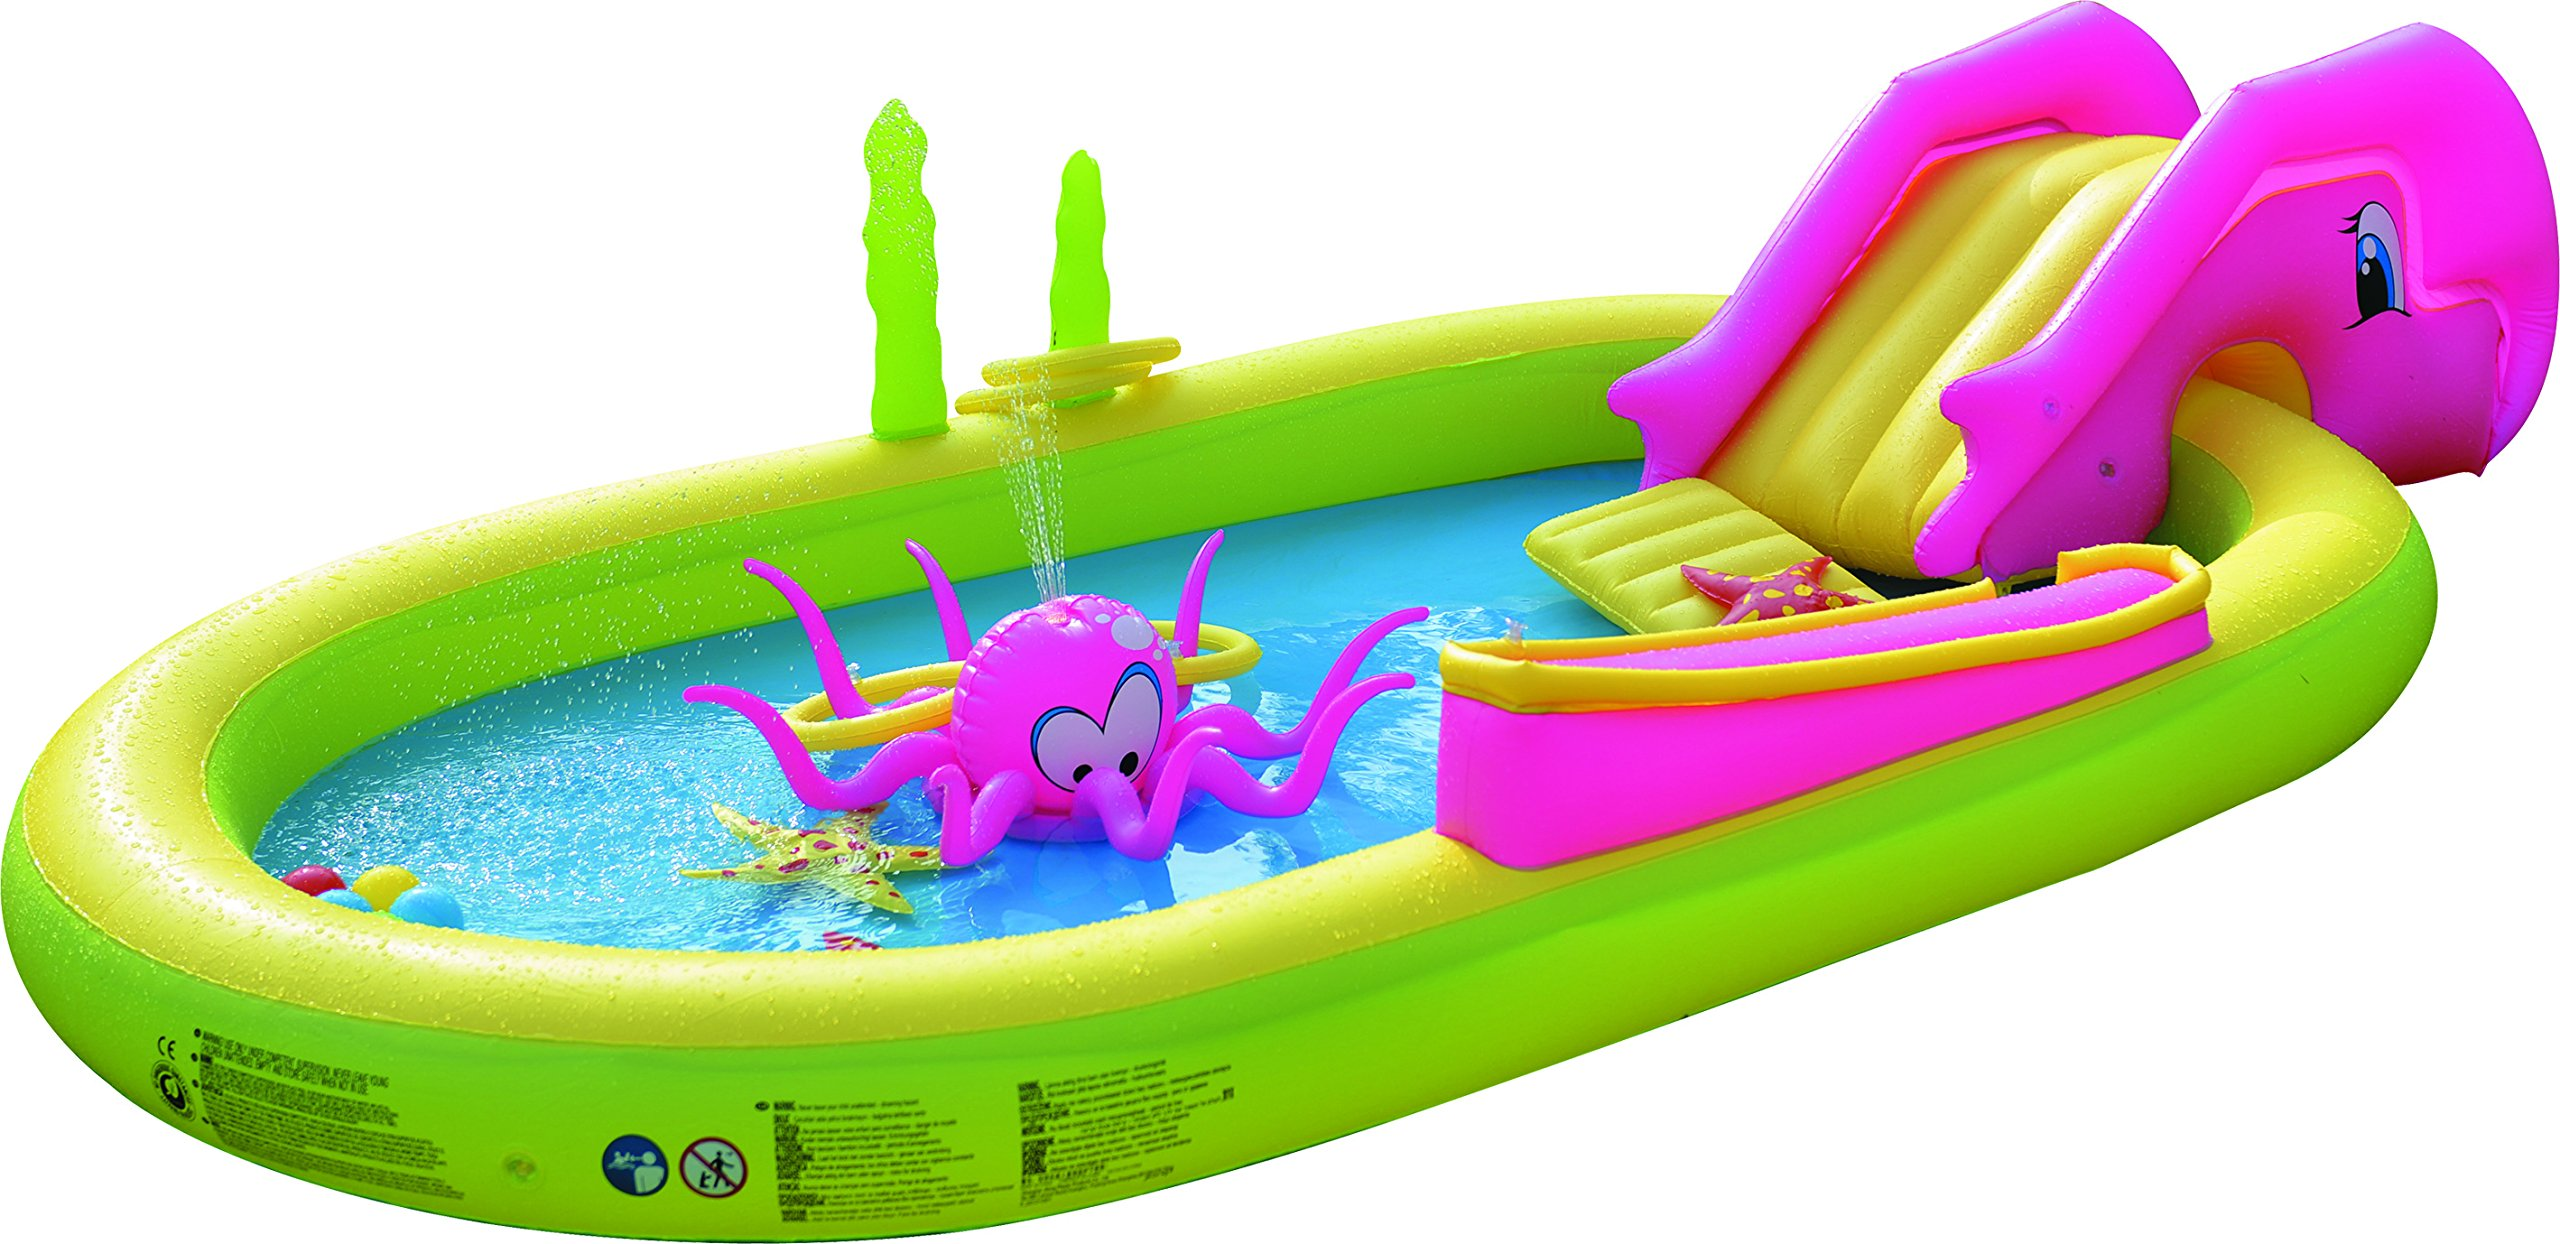 Jilong Giant Inflatable Sea Animal Kiddie Play Pool - Inflatable Pool for Kids - Complete with Pool Accessories and Water Activities - 117'' X 65'' X 22'' by JILONG  (Image #7)